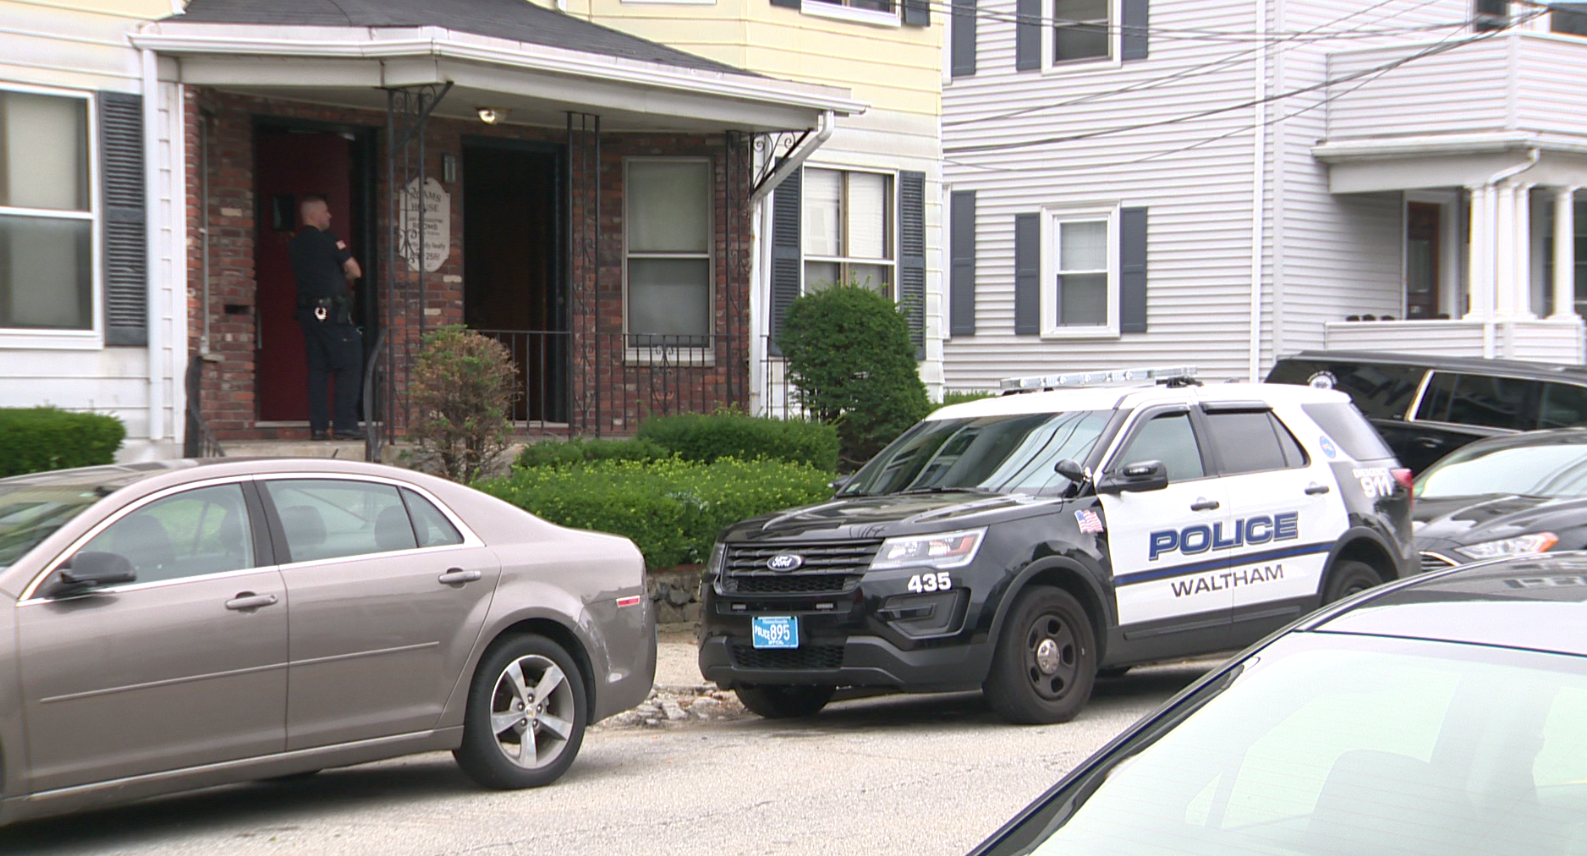 'Suspicious Death' Investigation Underway In Waltham